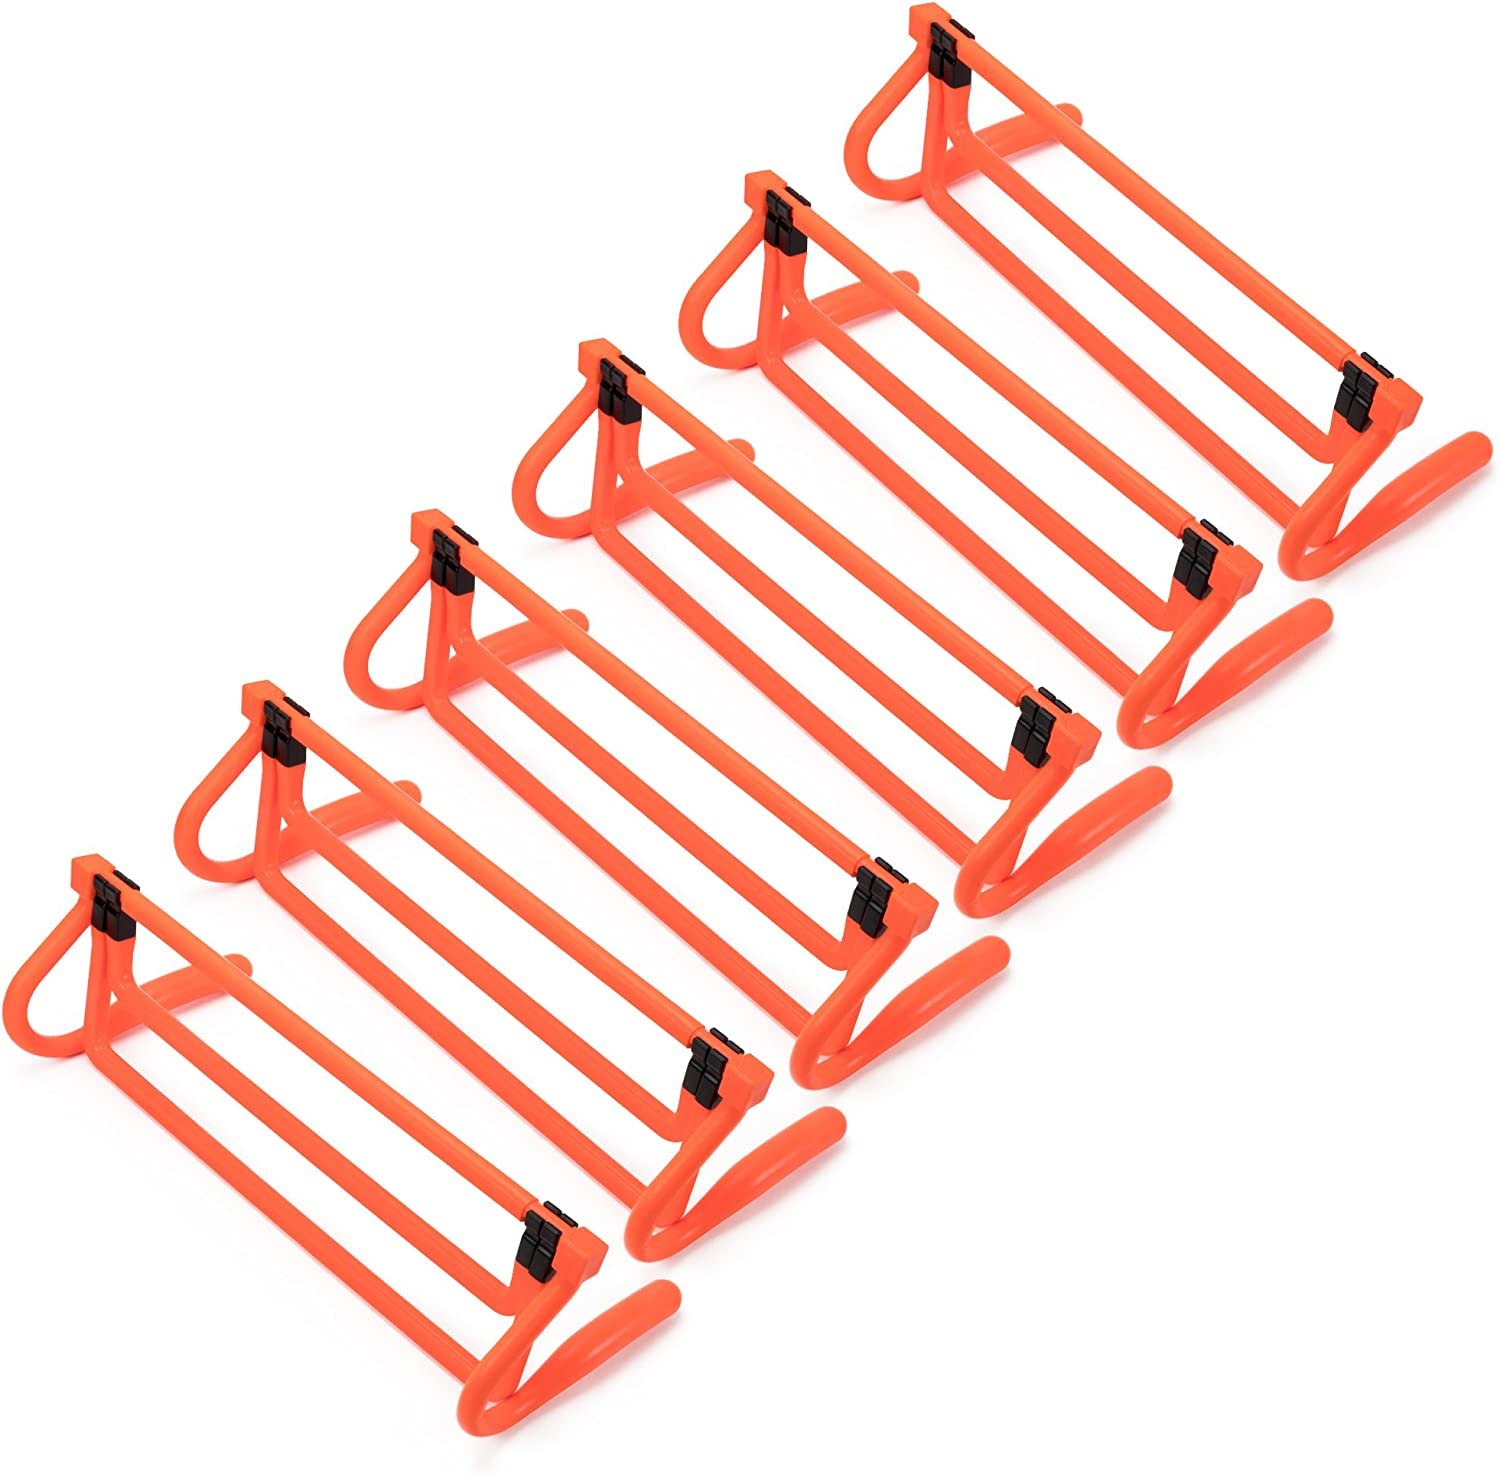 6-Pack of Agility Hurdles with Adjustable Height Extenders – Neon Orange Set & Carry Bag – Plyometric Fitness & Speed Training Equipment – Hurdle/Obstacles for Soccer, Football, Track & Field & More : Sports & Outdoors